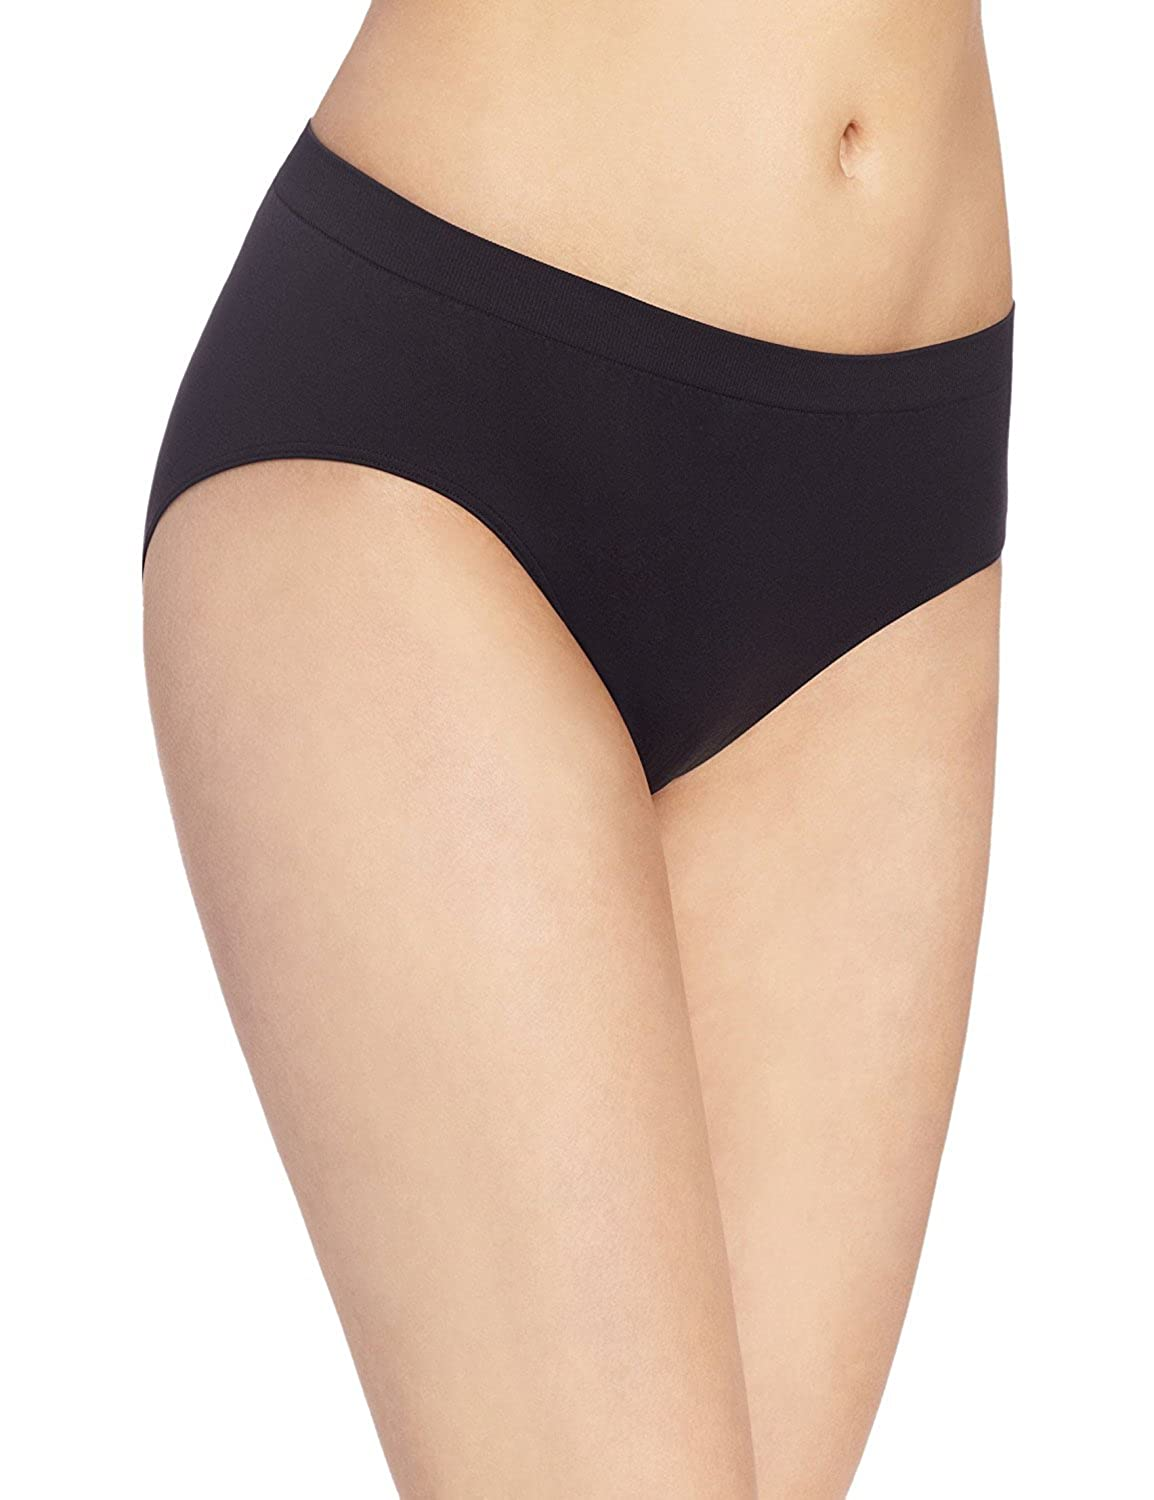 2063936e7d3  Questions about Bali Panties  Bali Women s Shapewear Seamless Brief Ultra  Control 2-Pack Question  Do these hold in the lower tummy pouch well